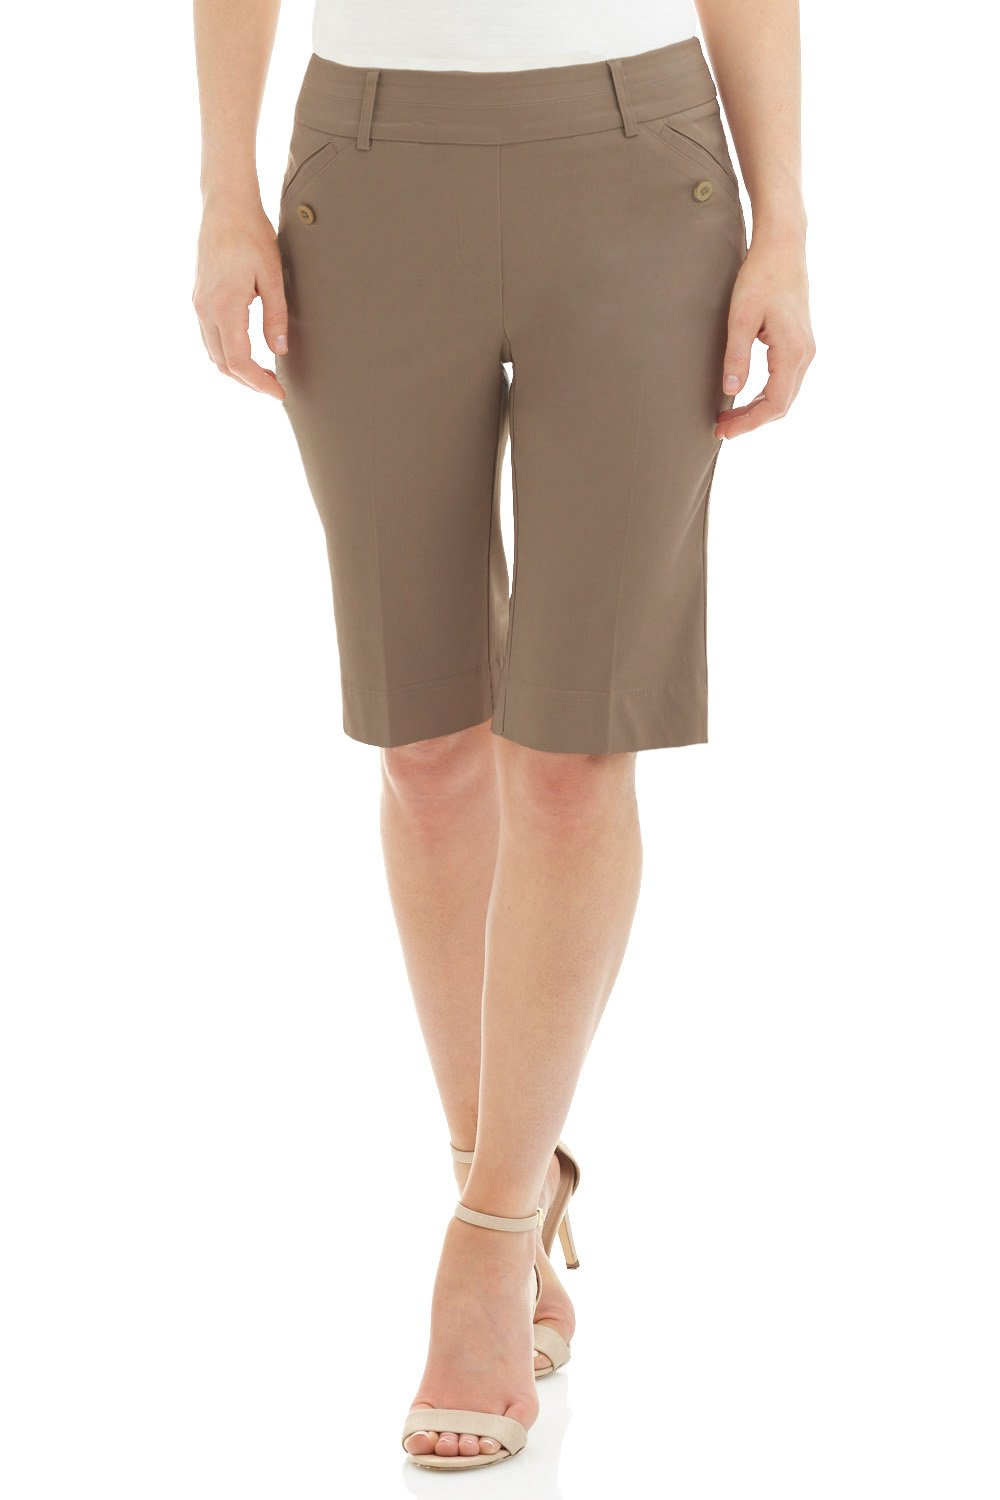 Rekucci Women's Ease in to Comfort Fit Modern Pull On Bermuda Short with Pockets (8,Oatmeal)